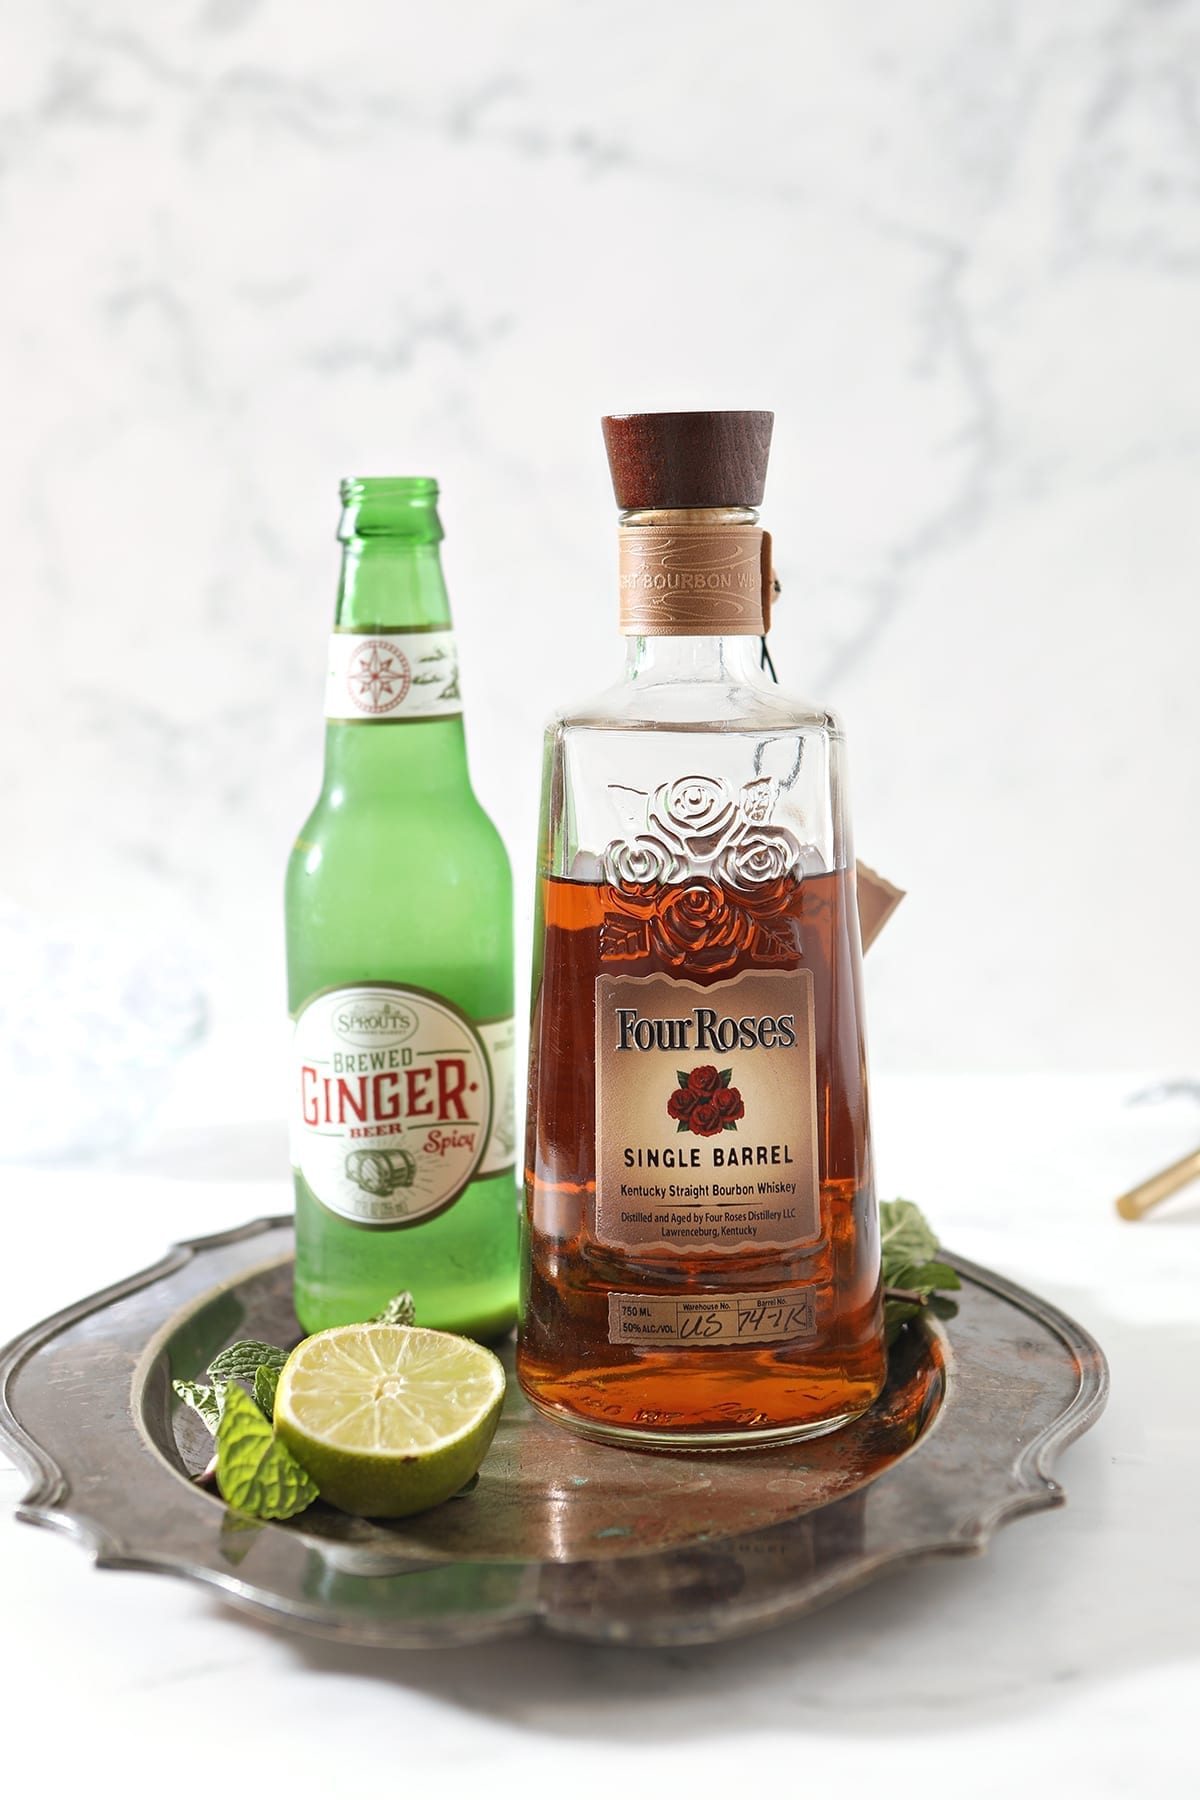 A bottle of bourbon, ginger beer and a lime with mint are shown on a silver platter